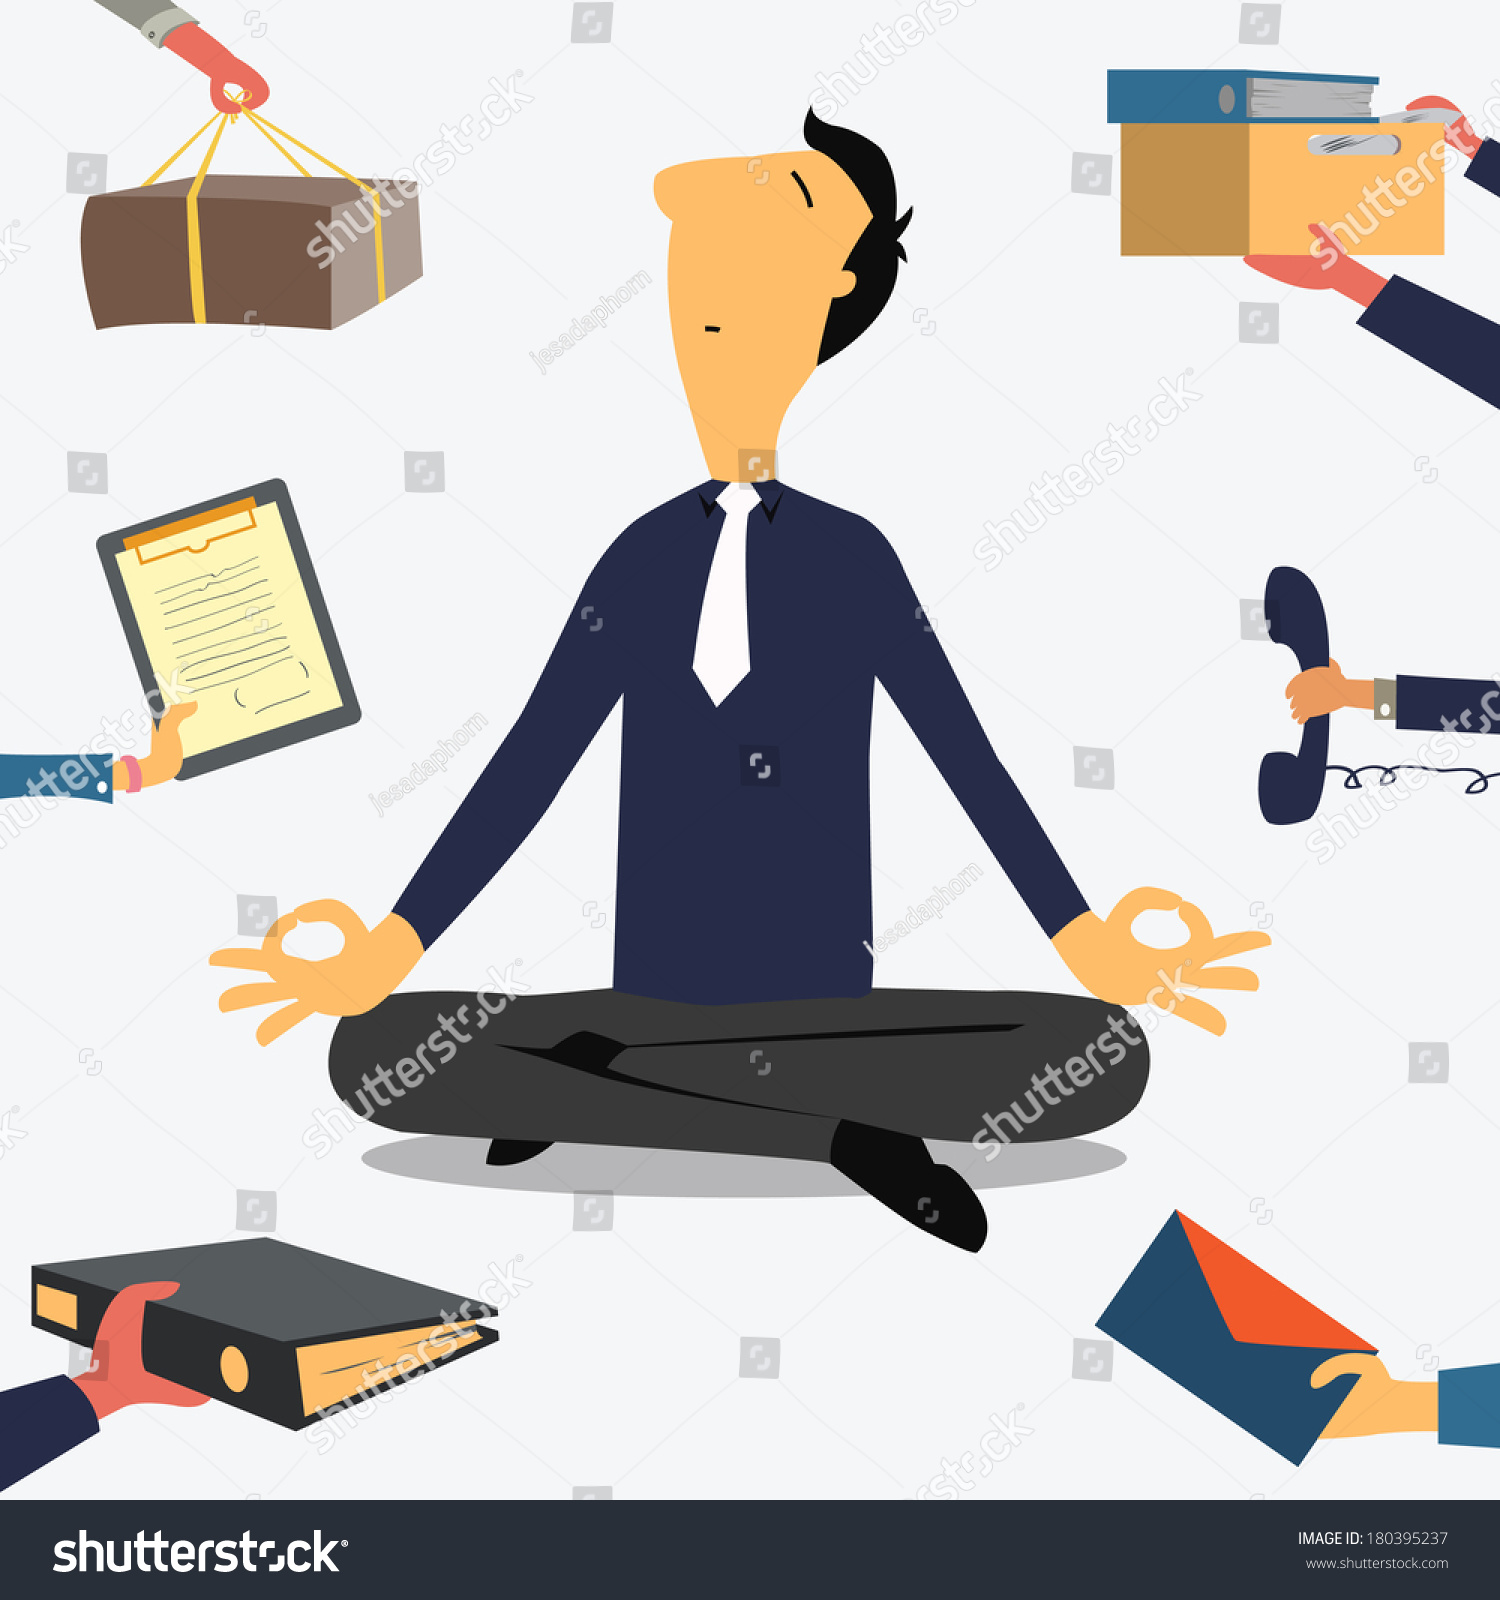 Businessman Doing Yoga Calm Down Stressful Stock Vector ...